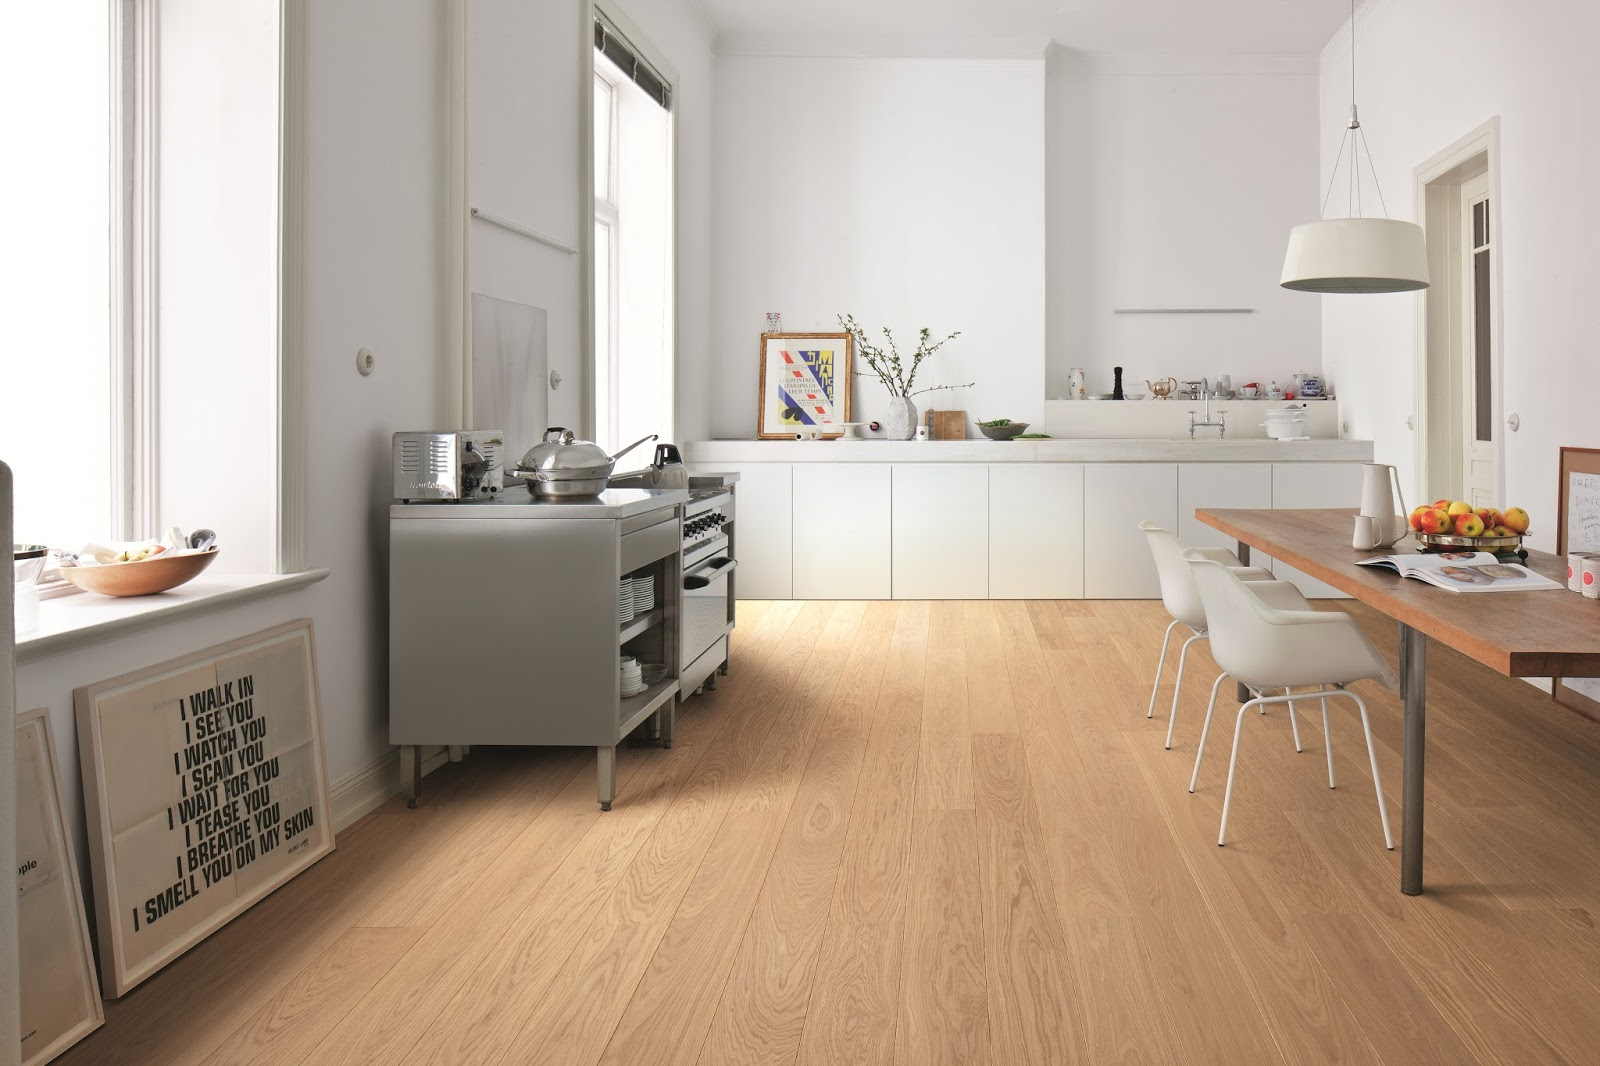 How to choose the pattern for your wood floor? | Real Wood Quality Floors in Europe